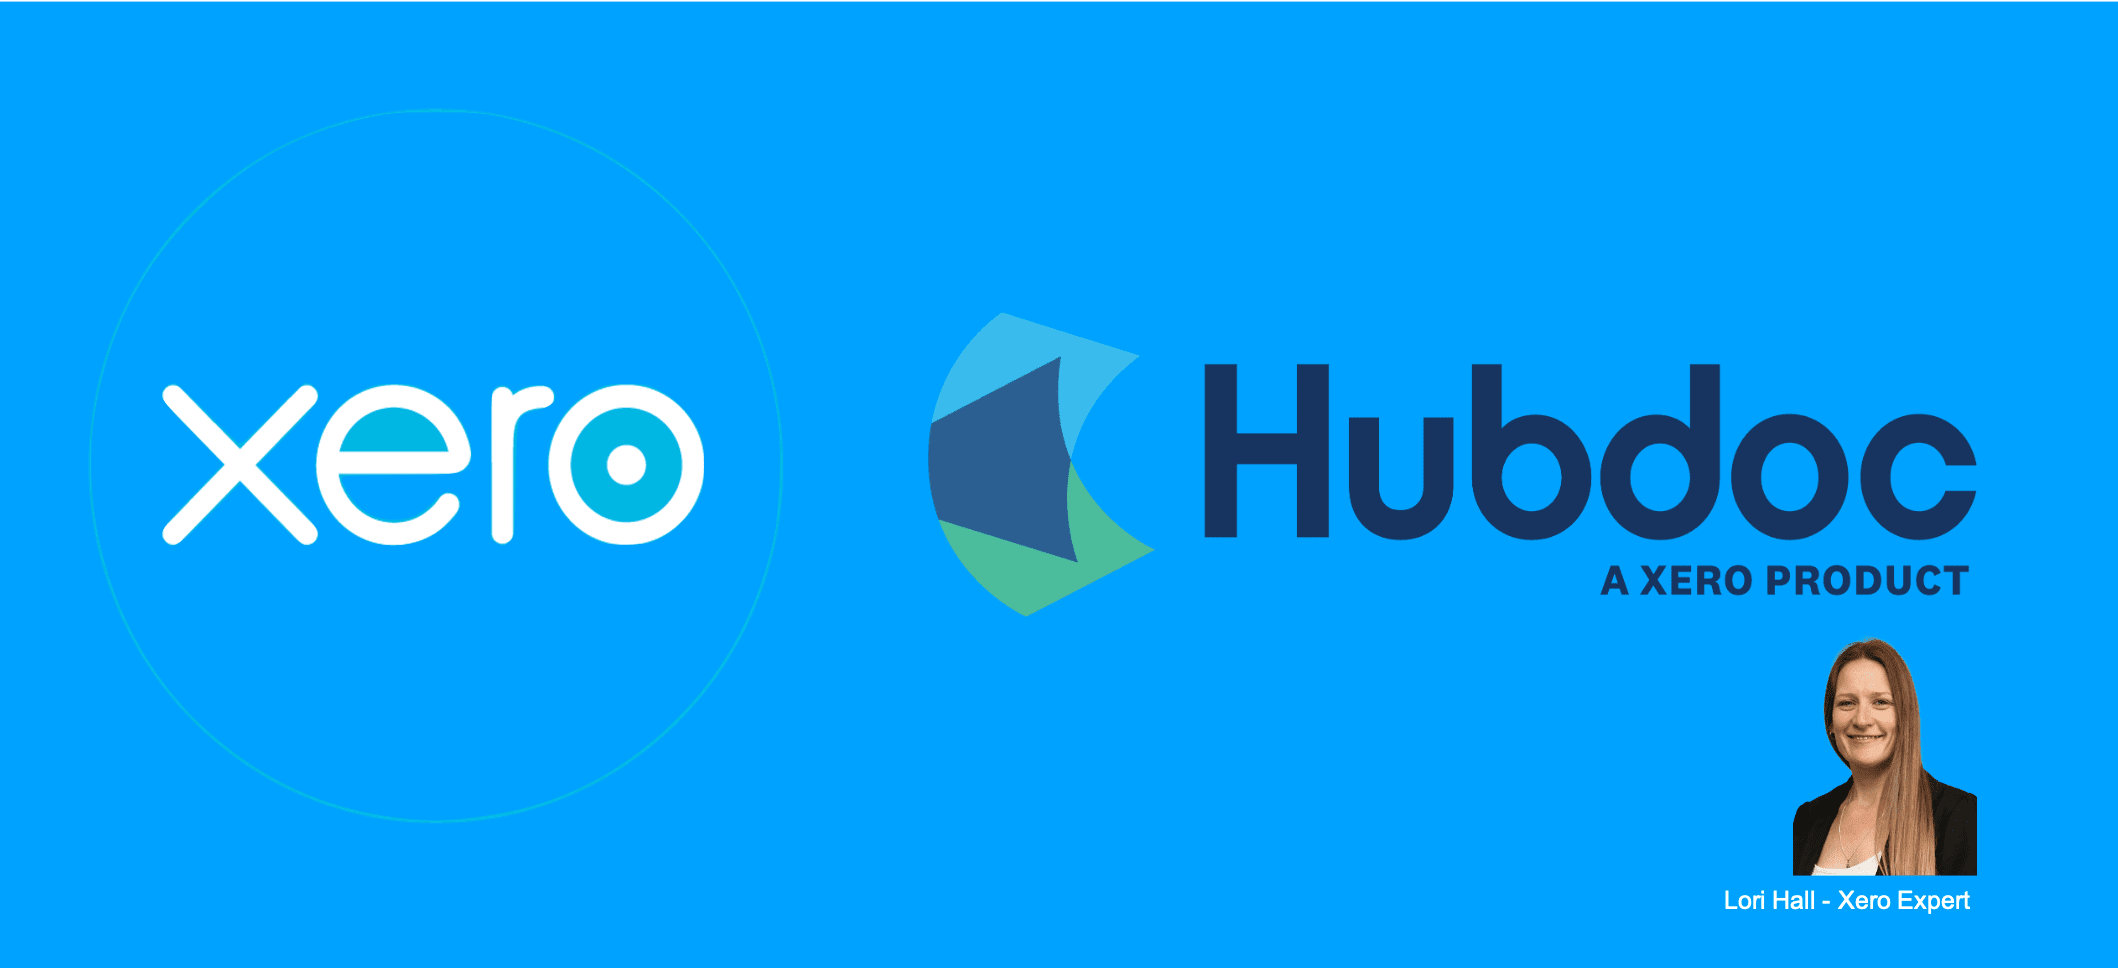 Filing Cabinet Be Gone – See How With Xero and HubDoc!